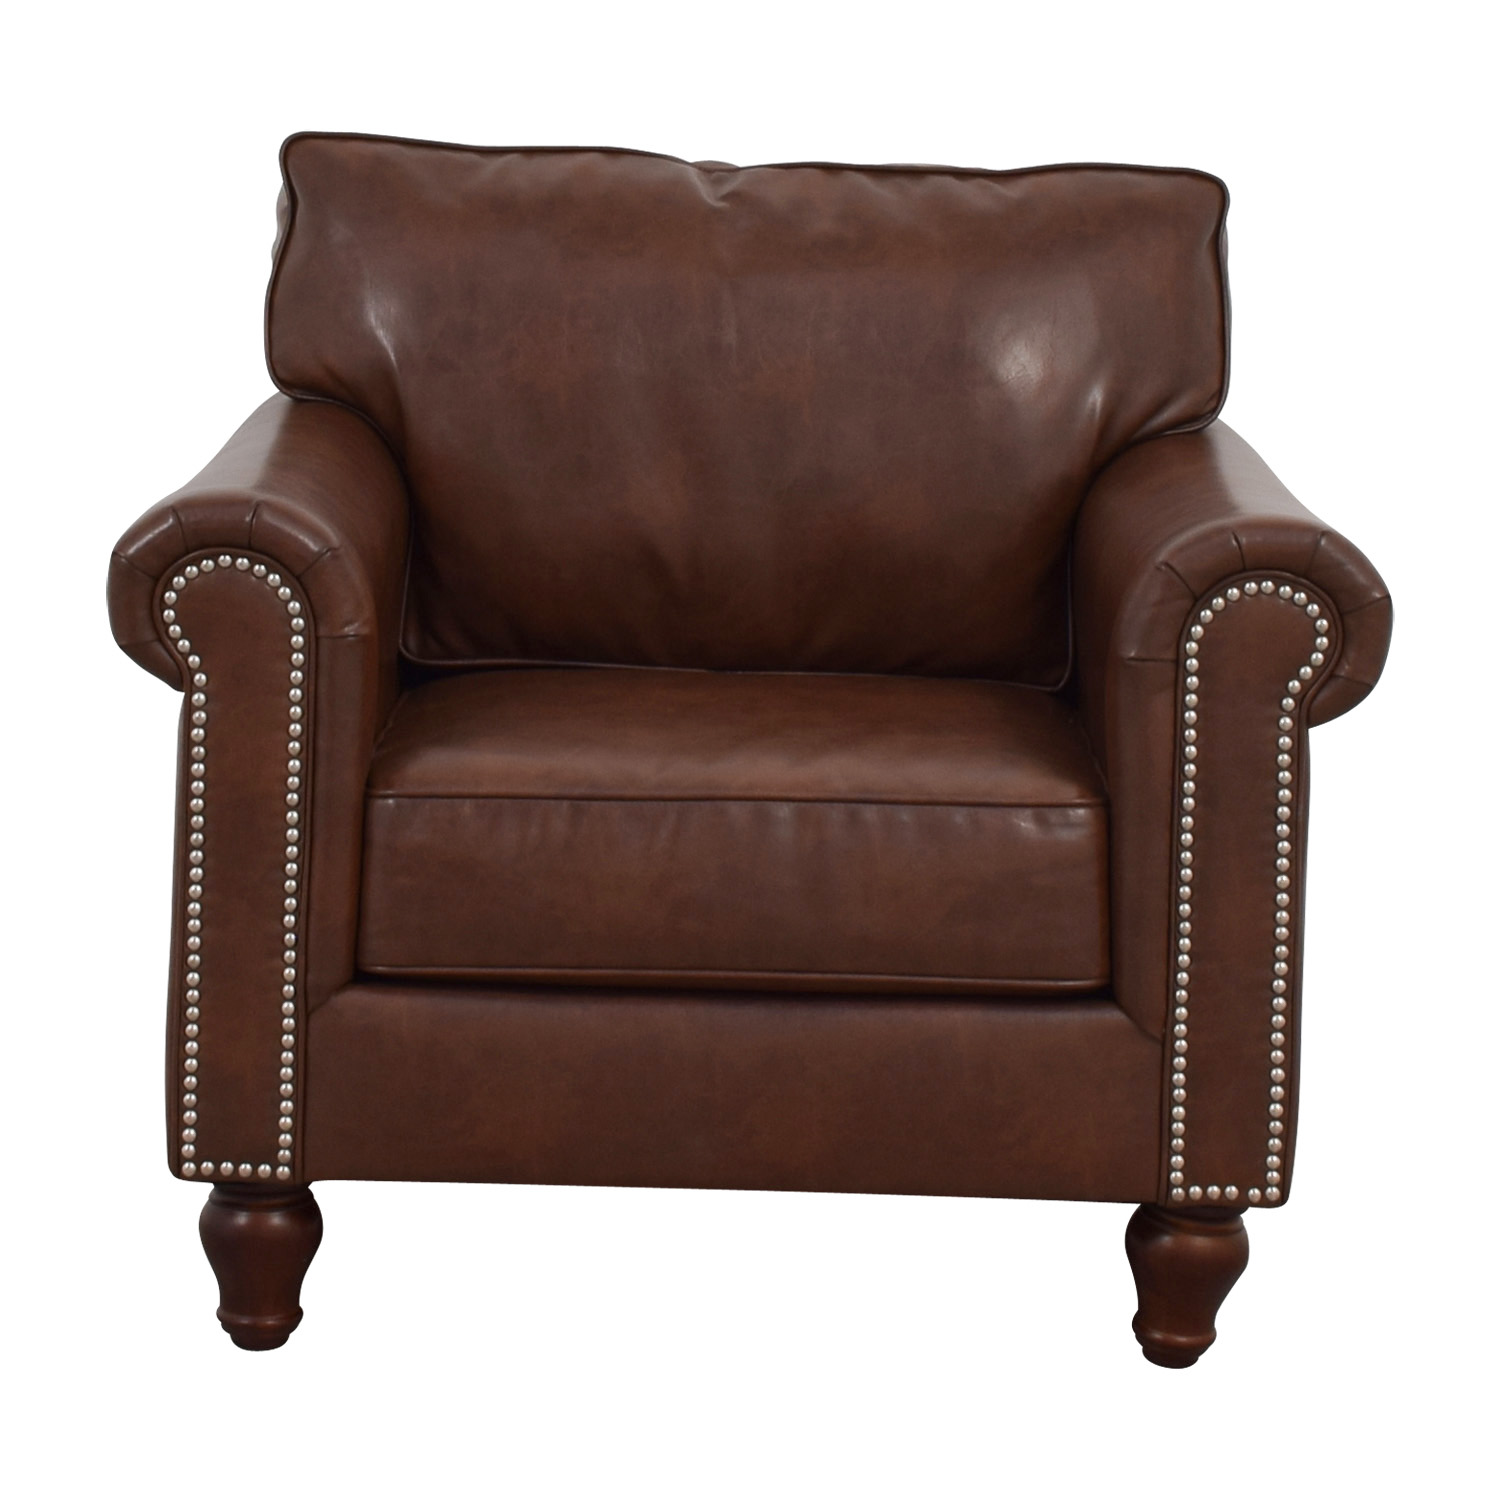 83% OFF   Pier 1 Pier 1 Imports Alton Tobacco Brown Rolled Nailhead  Armchair / Chairs